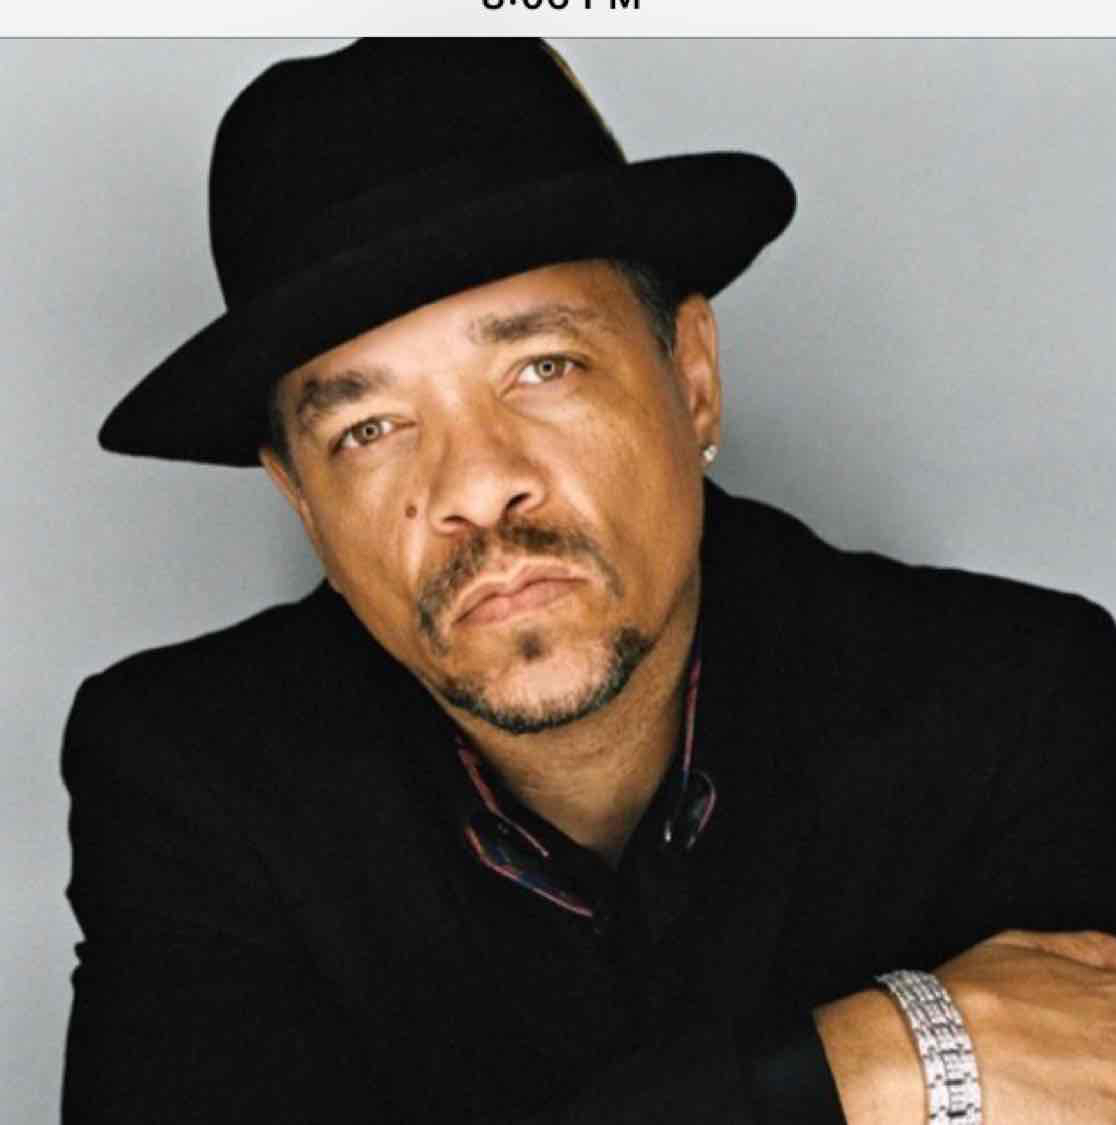 Avatar of Ice T